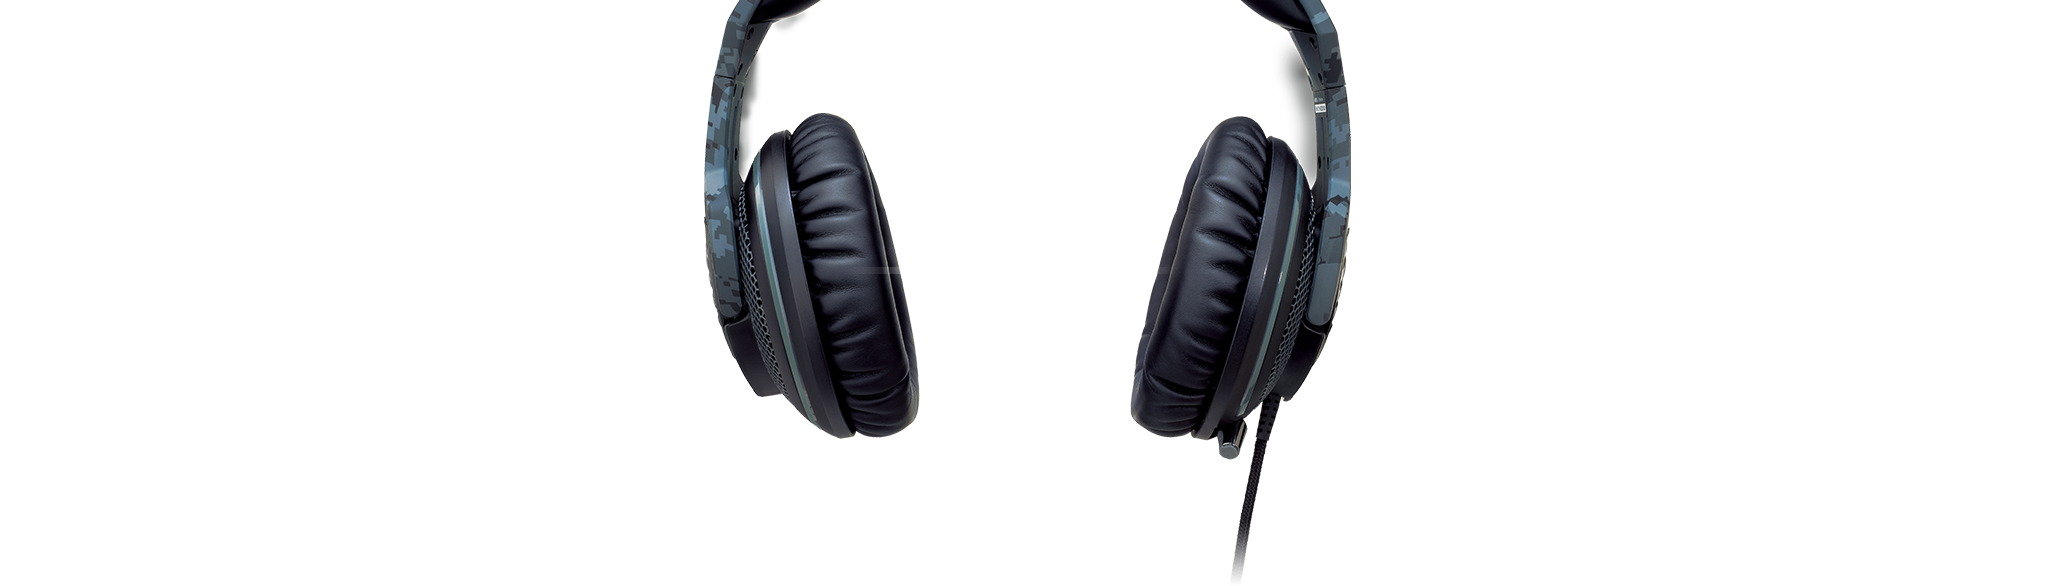 49ec98a1eaa Clearer in-game audio gives you total focus